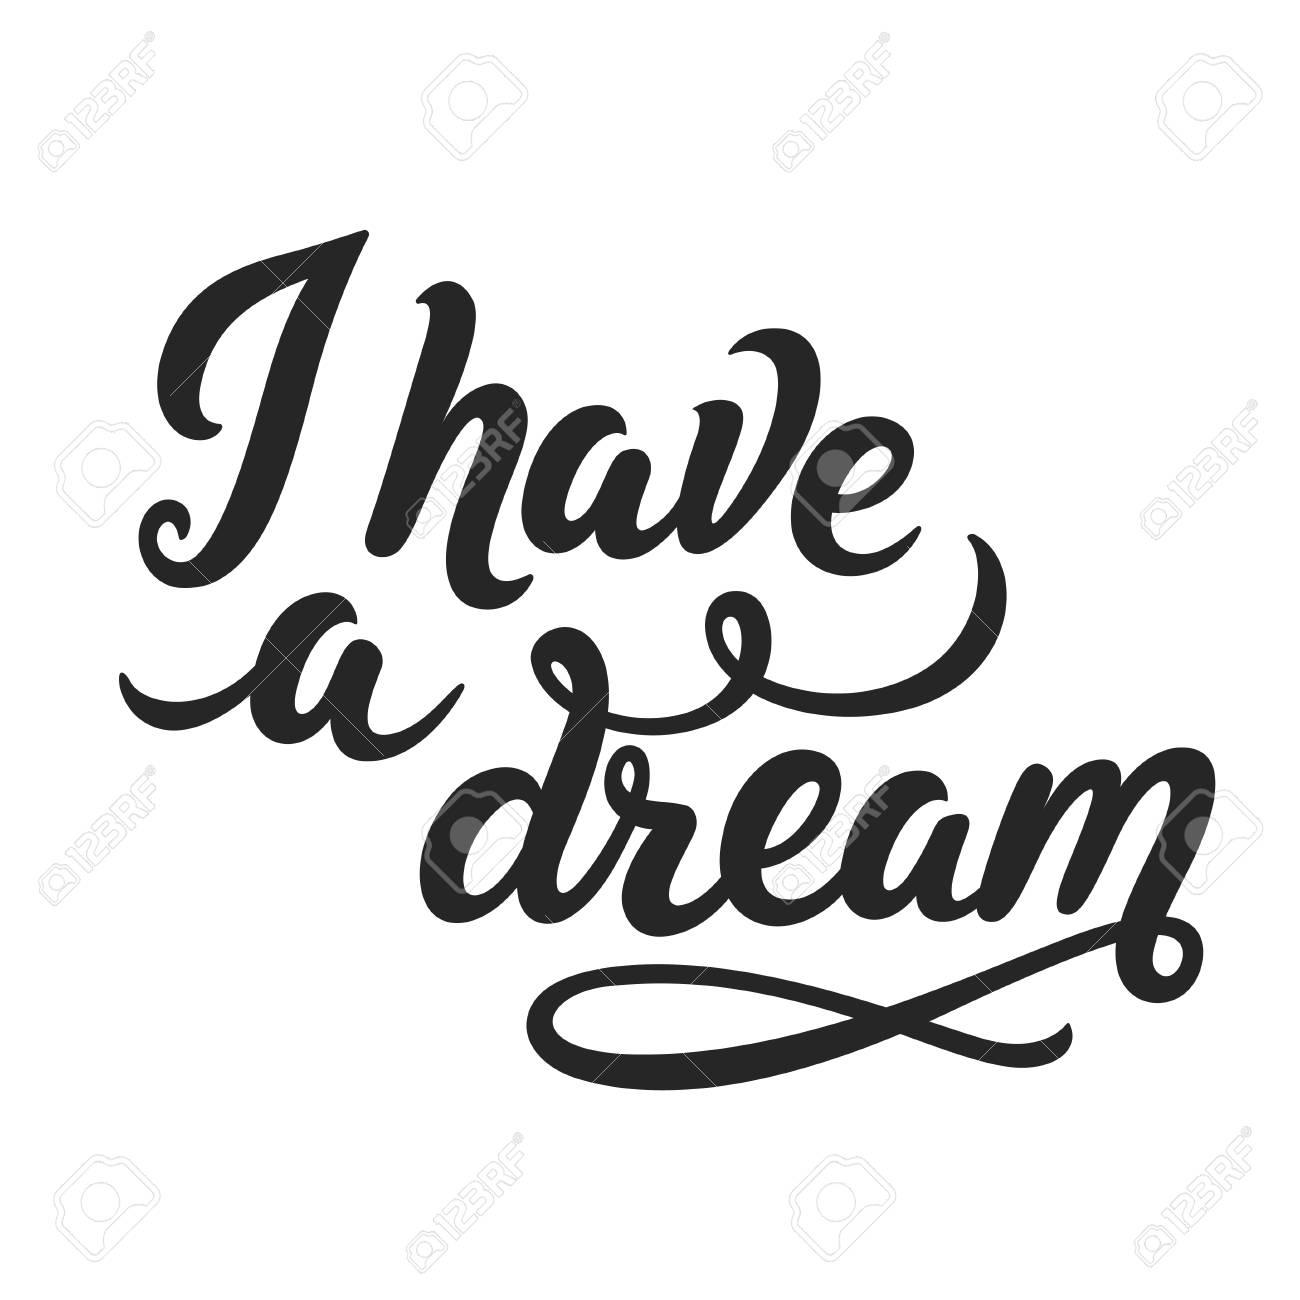 I Have A Dream Hand Drawn Calligraphy Lettering Text Famous